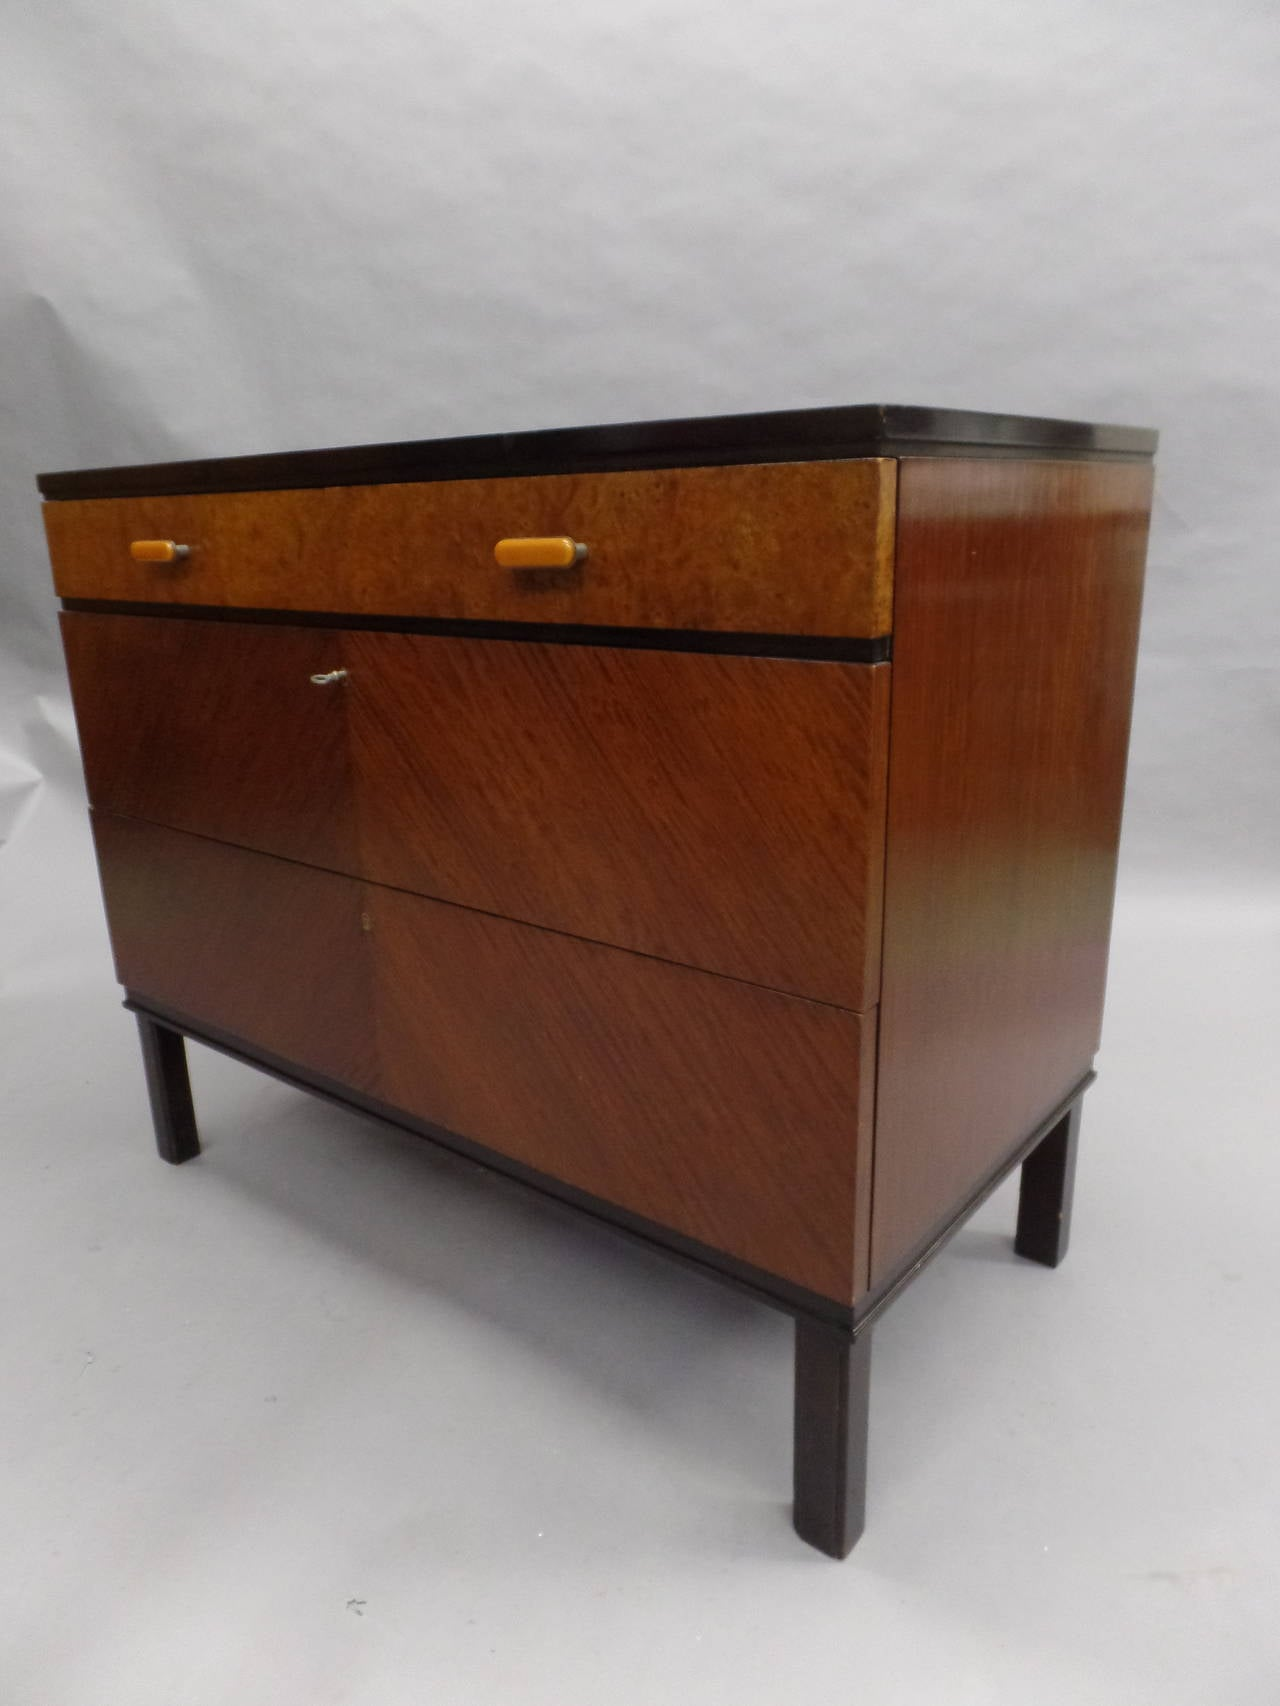 Swedish Mid-Century Modern Chest of Drawers / Commode by Axel Einar Hjort, 1930 4